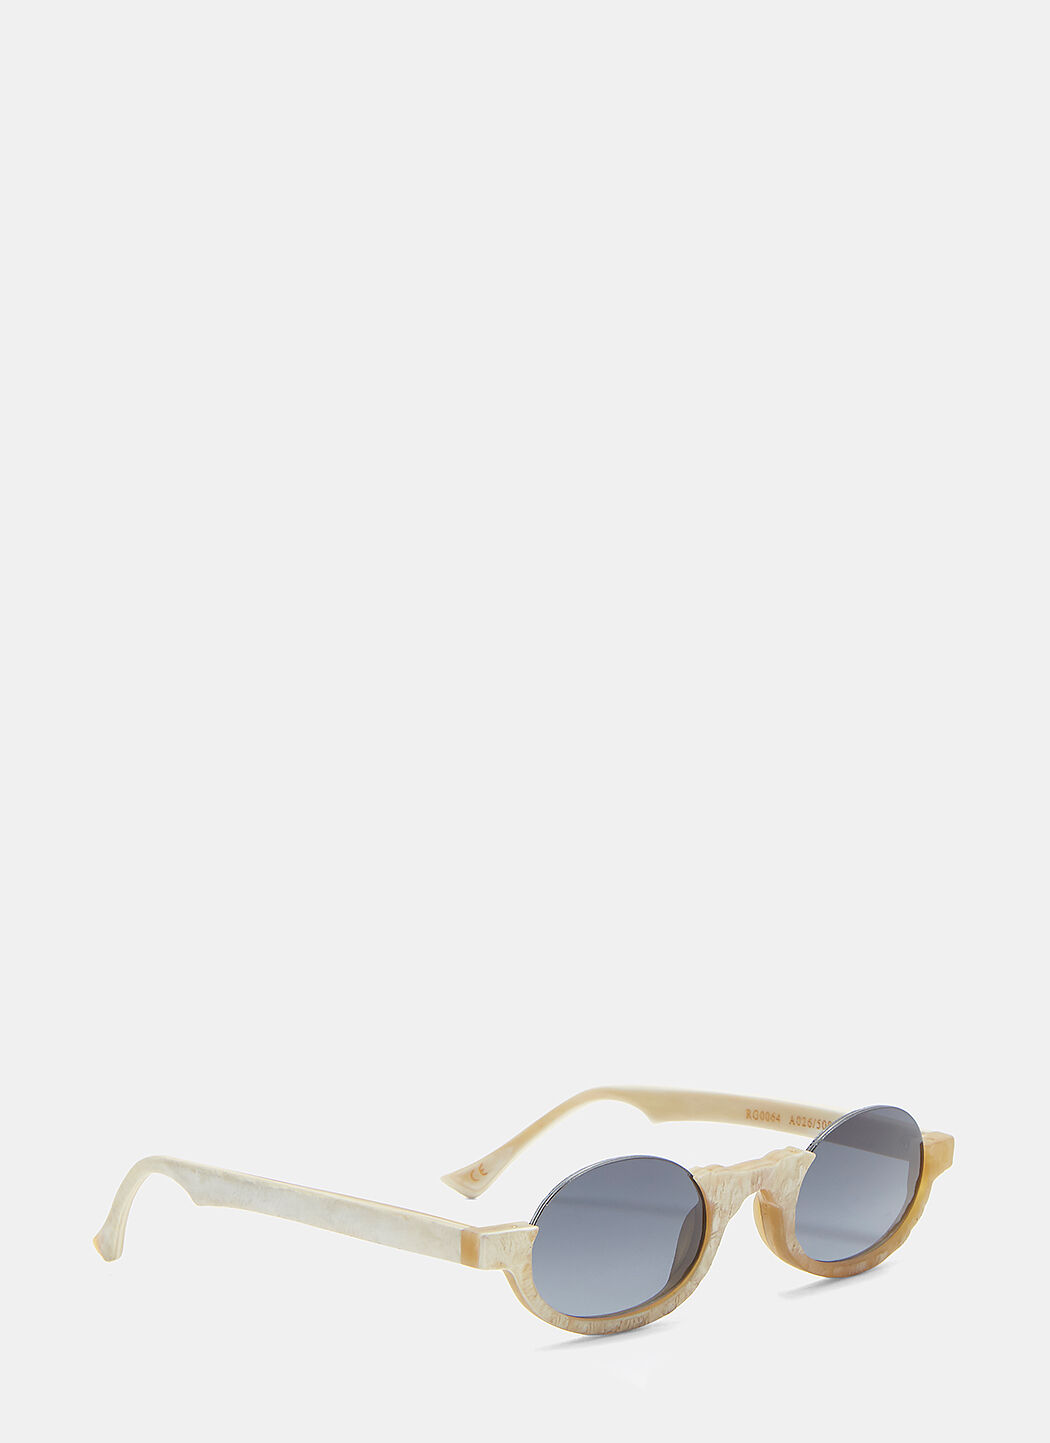 Unisex 0064 Sunglasses in Beige